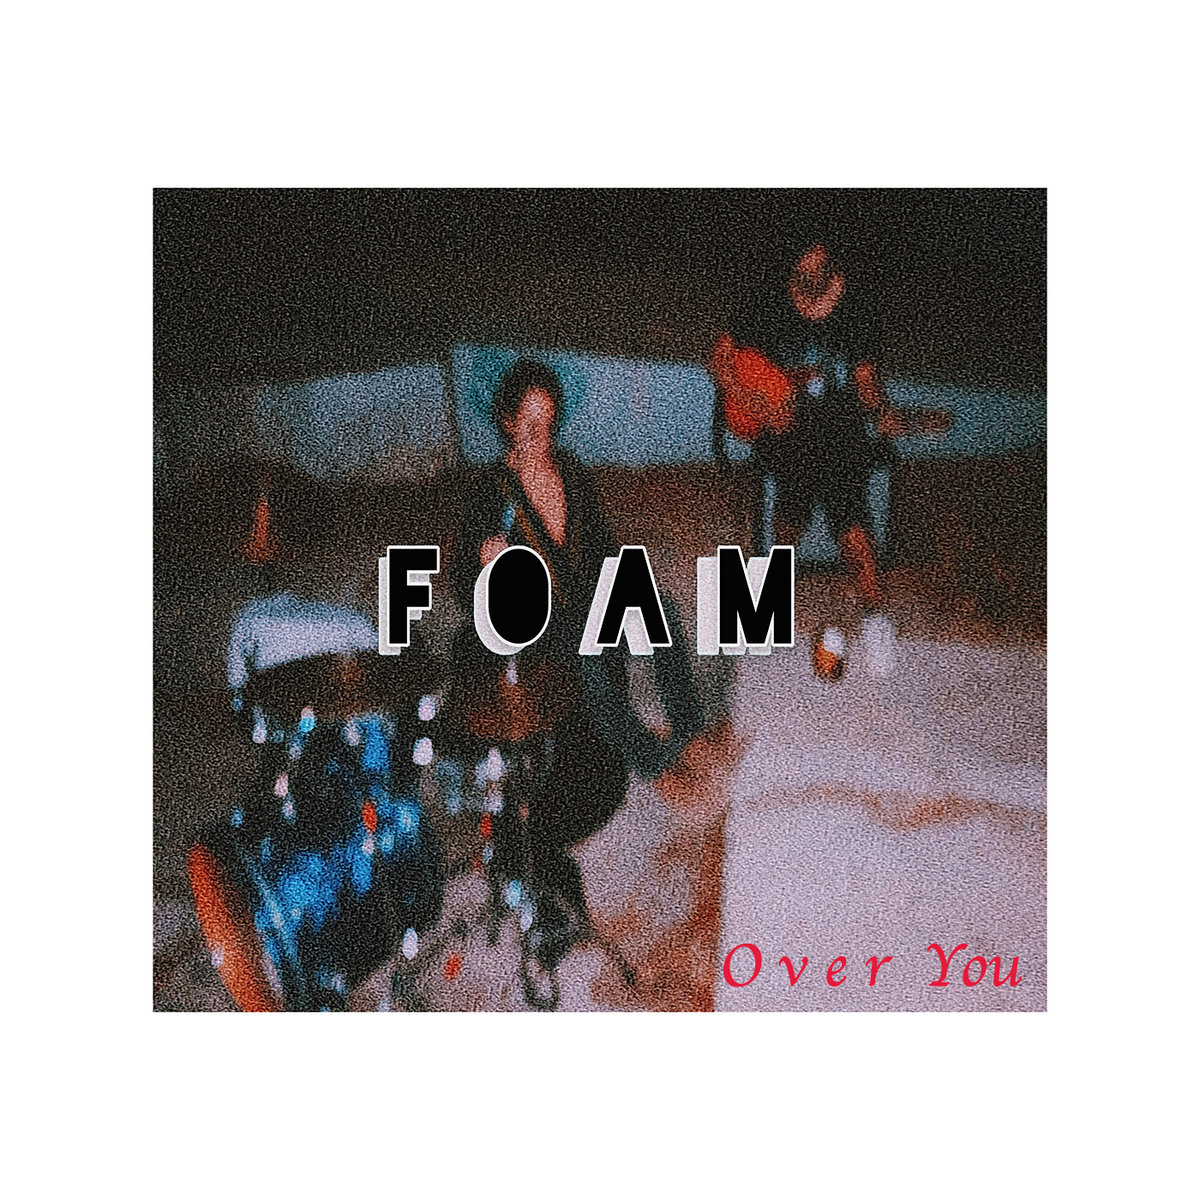 Over You by FOAM